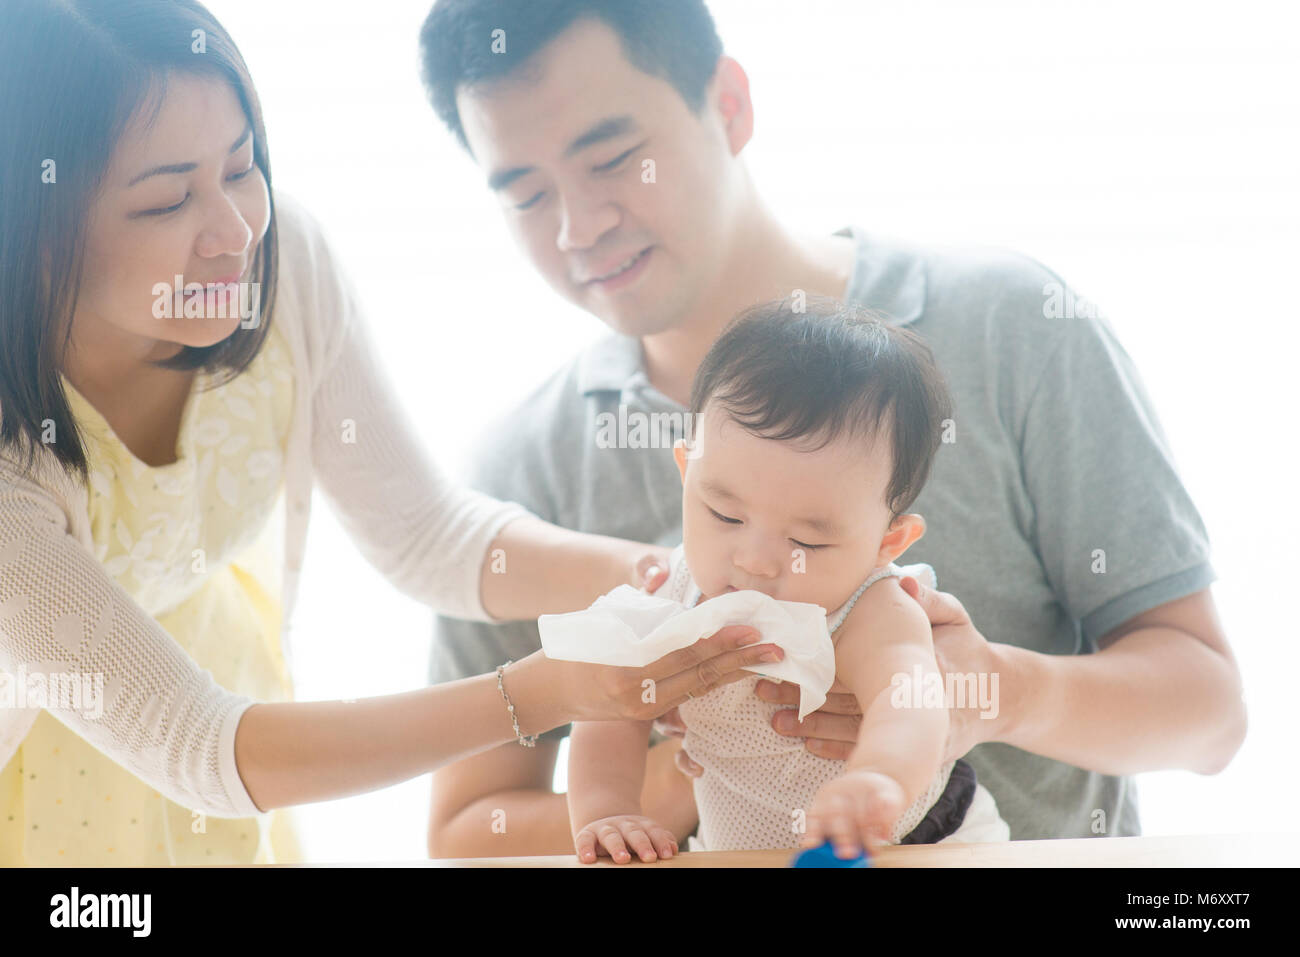 spending days with grand parents essay Parents are among the most important people in the lives of young children   without convenient transportation, she spent much of her time commuting on the  bus  such as grandparents, and in other household arrangements (child  trends.